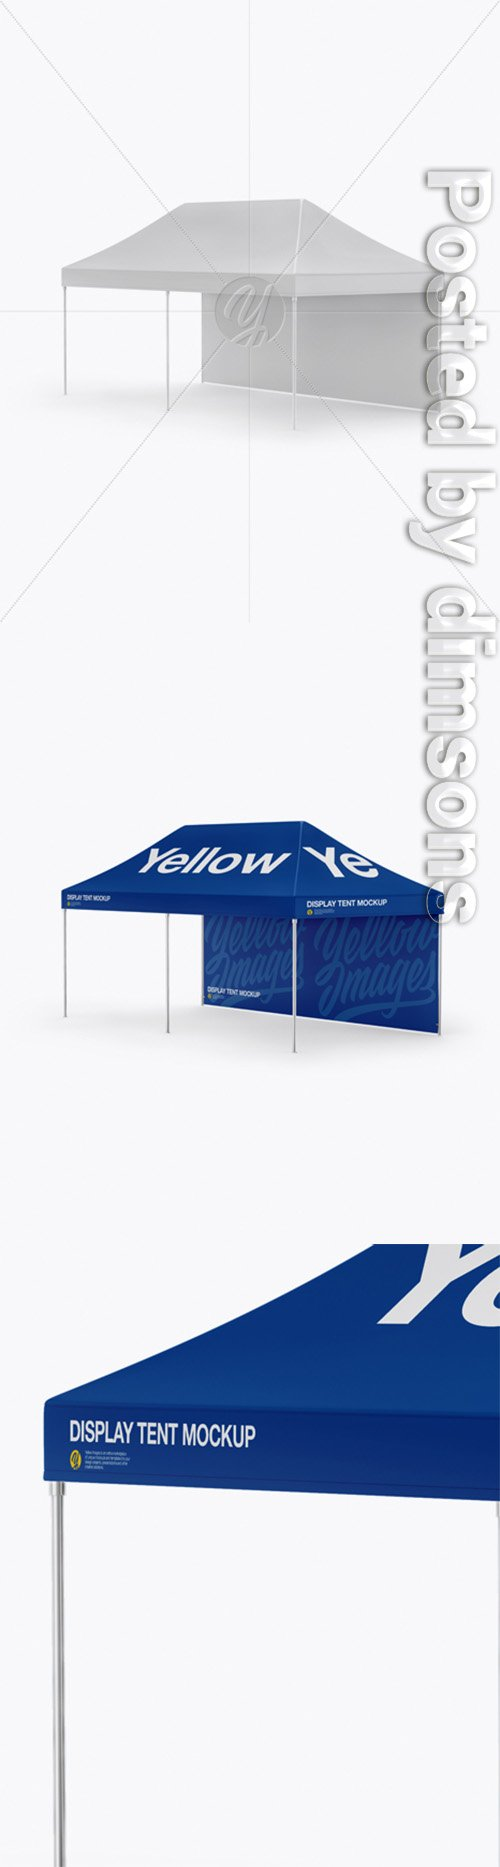 Display Tent W/ One Wall Mockup - Half Side View 30413 TIF